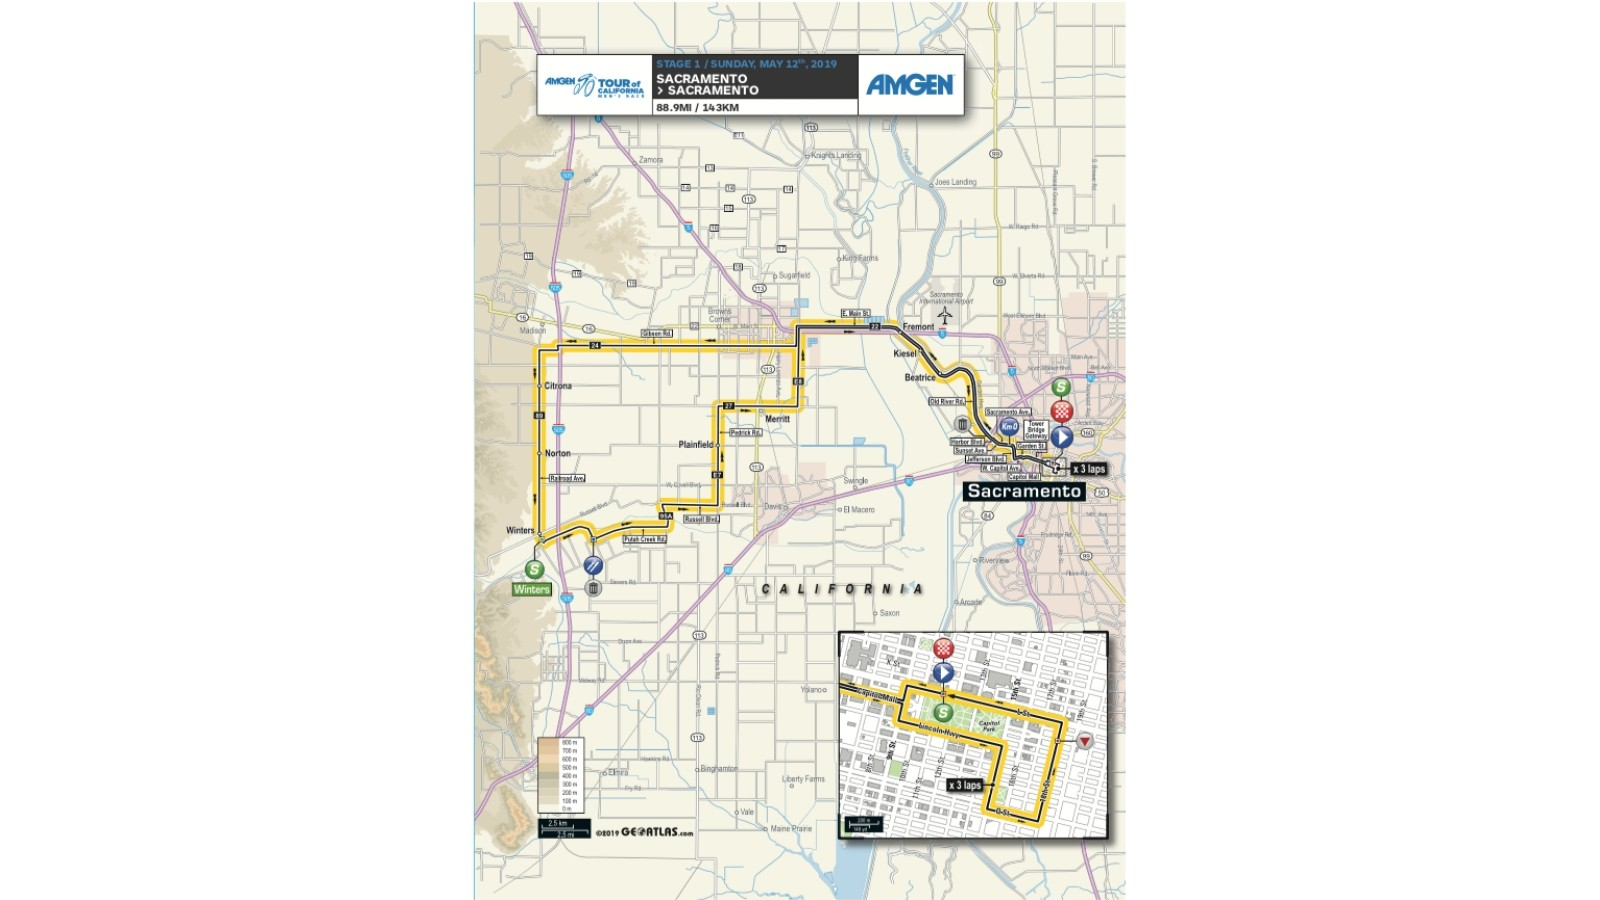 Amgen Tour of California 2019 men's race stage 1 route map